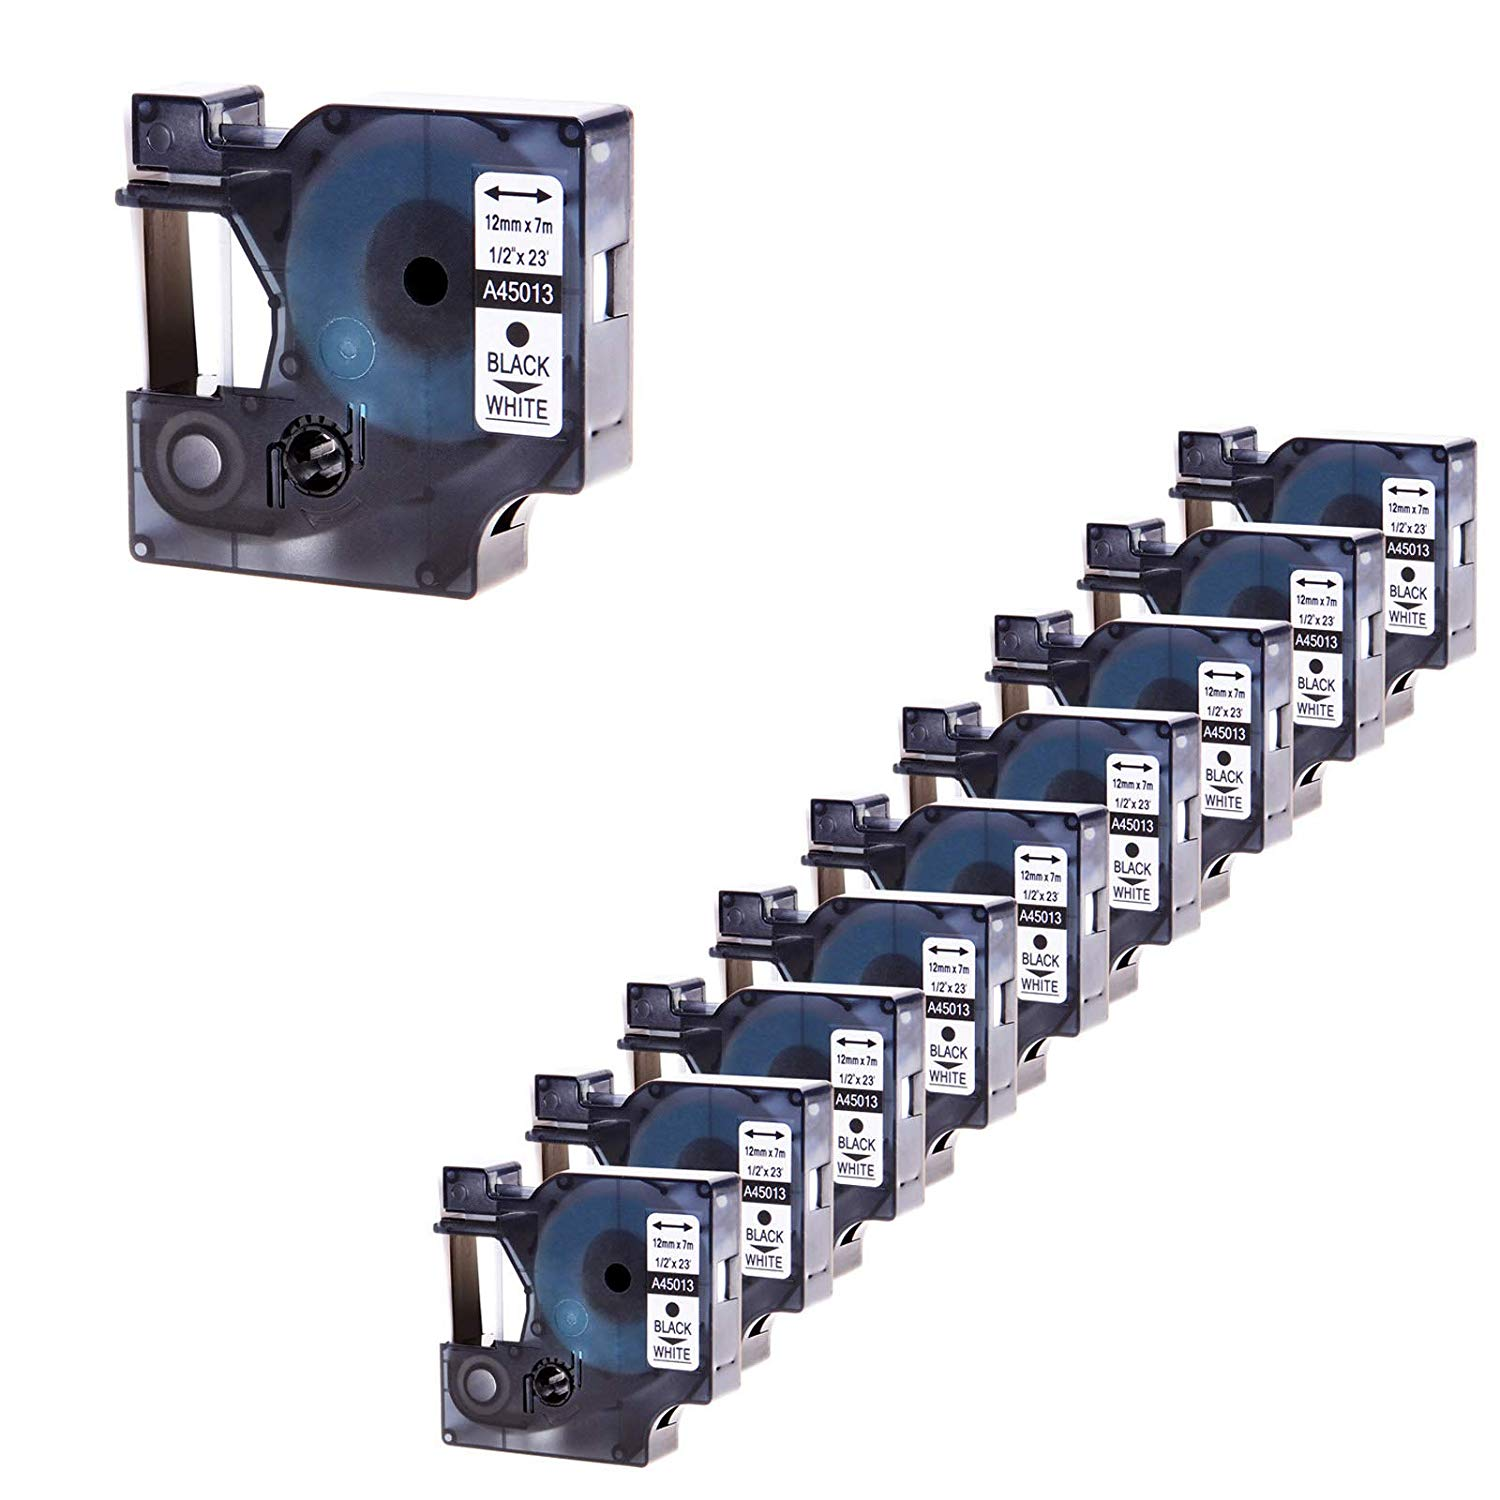 Cheap Dymo Label 400, find Dymo Label 400 deals on line at